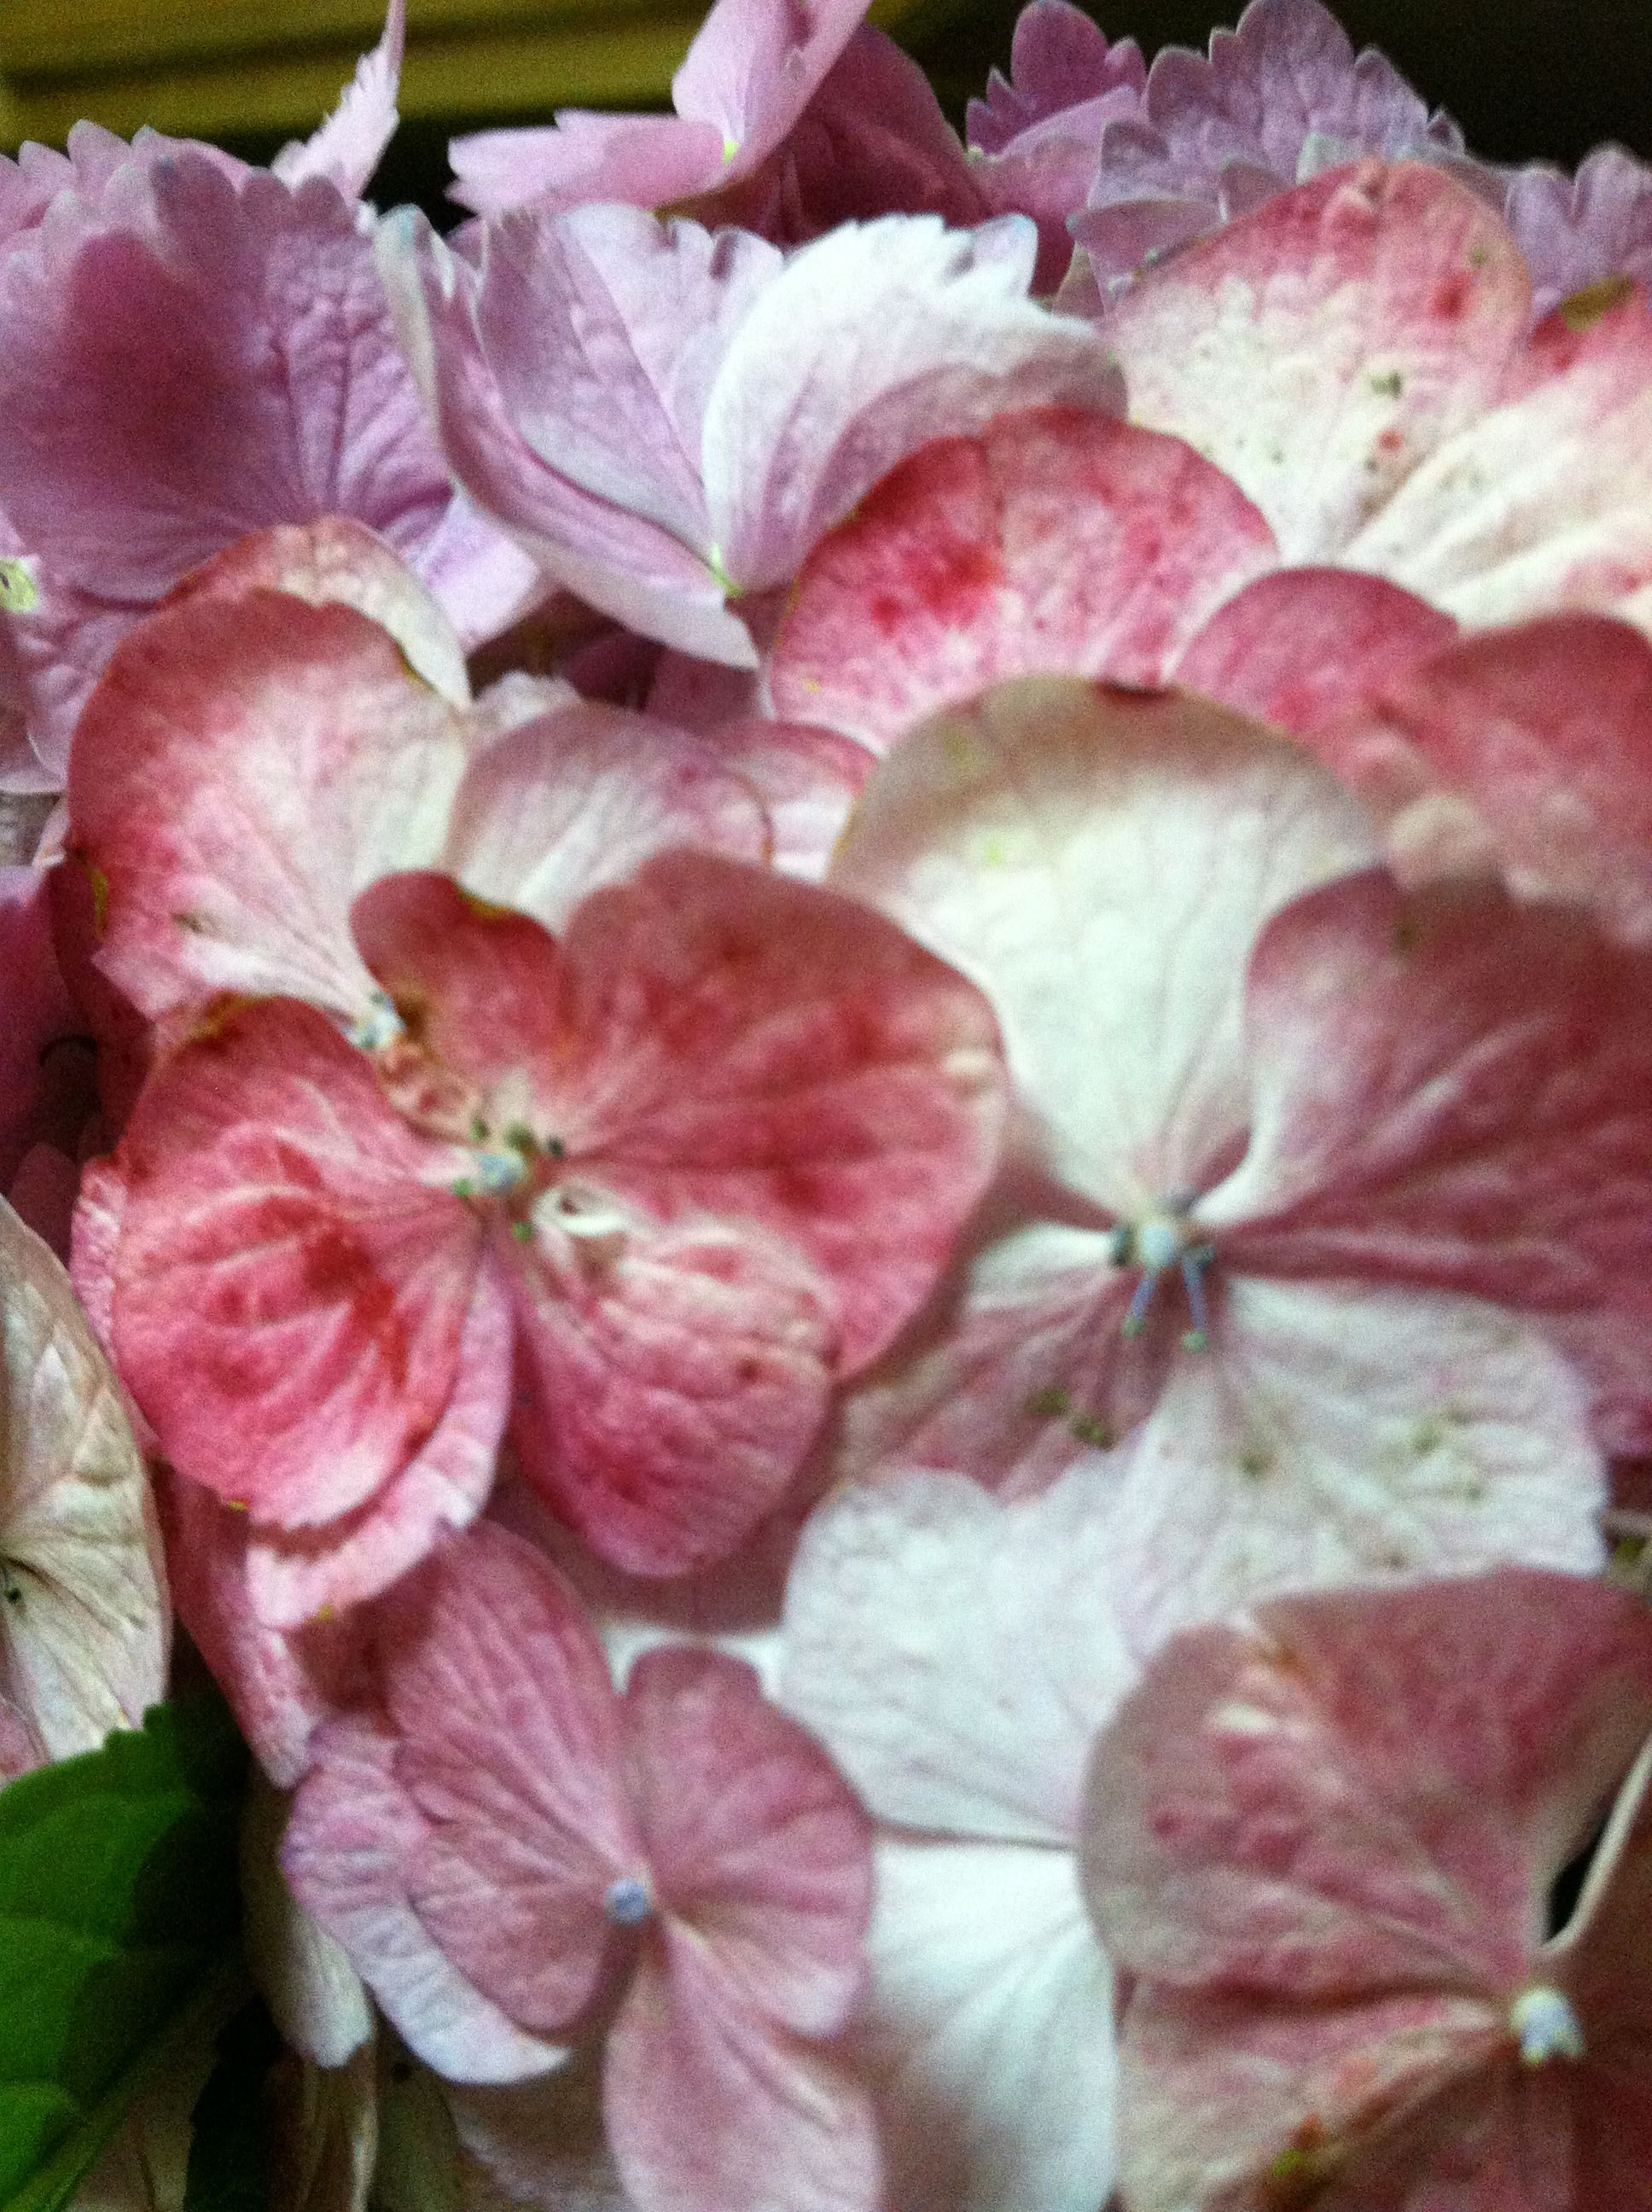 Hydrangea close up - love the individual petals - perfection!